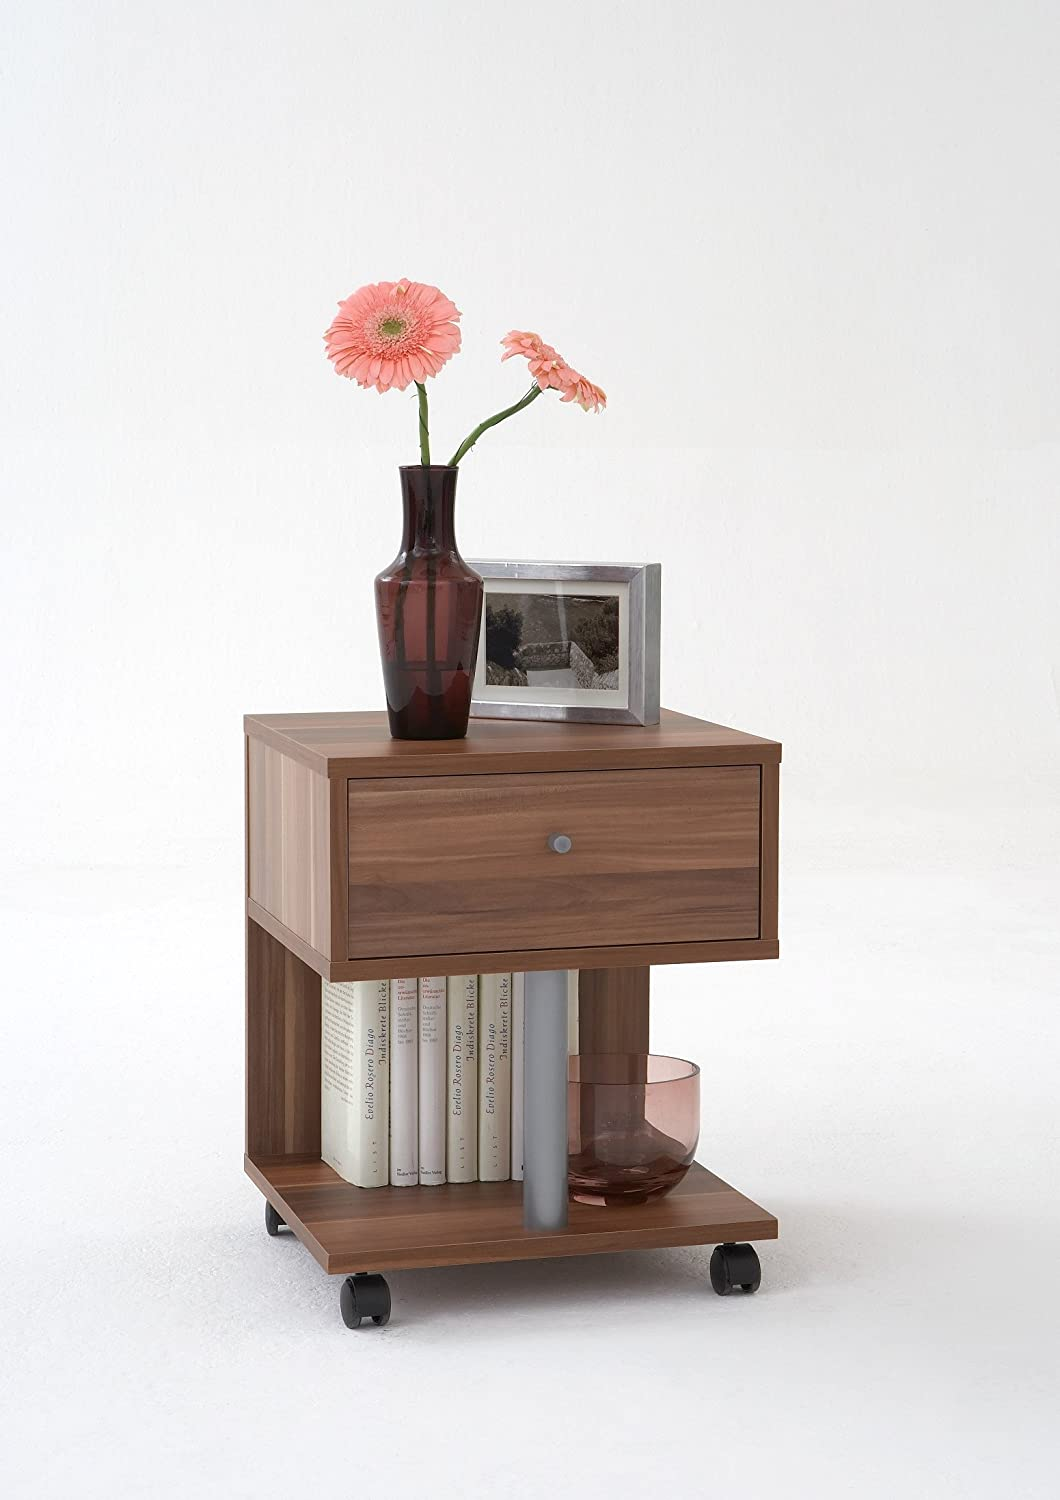 Attrayant Walnut Colour Wood Bedside Coffee Side Table On Wheels By DMF:  Amazon.co.uk: Kitchen U0026 Home